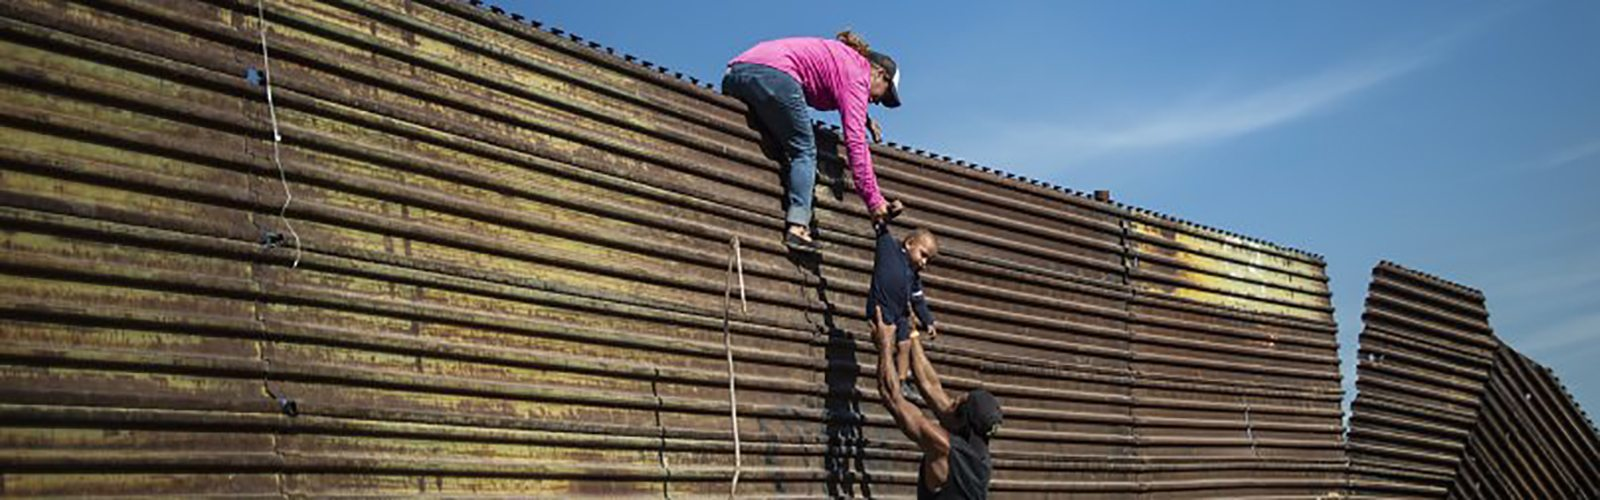 Boarder Wall US Mexico Illegal Immigrants